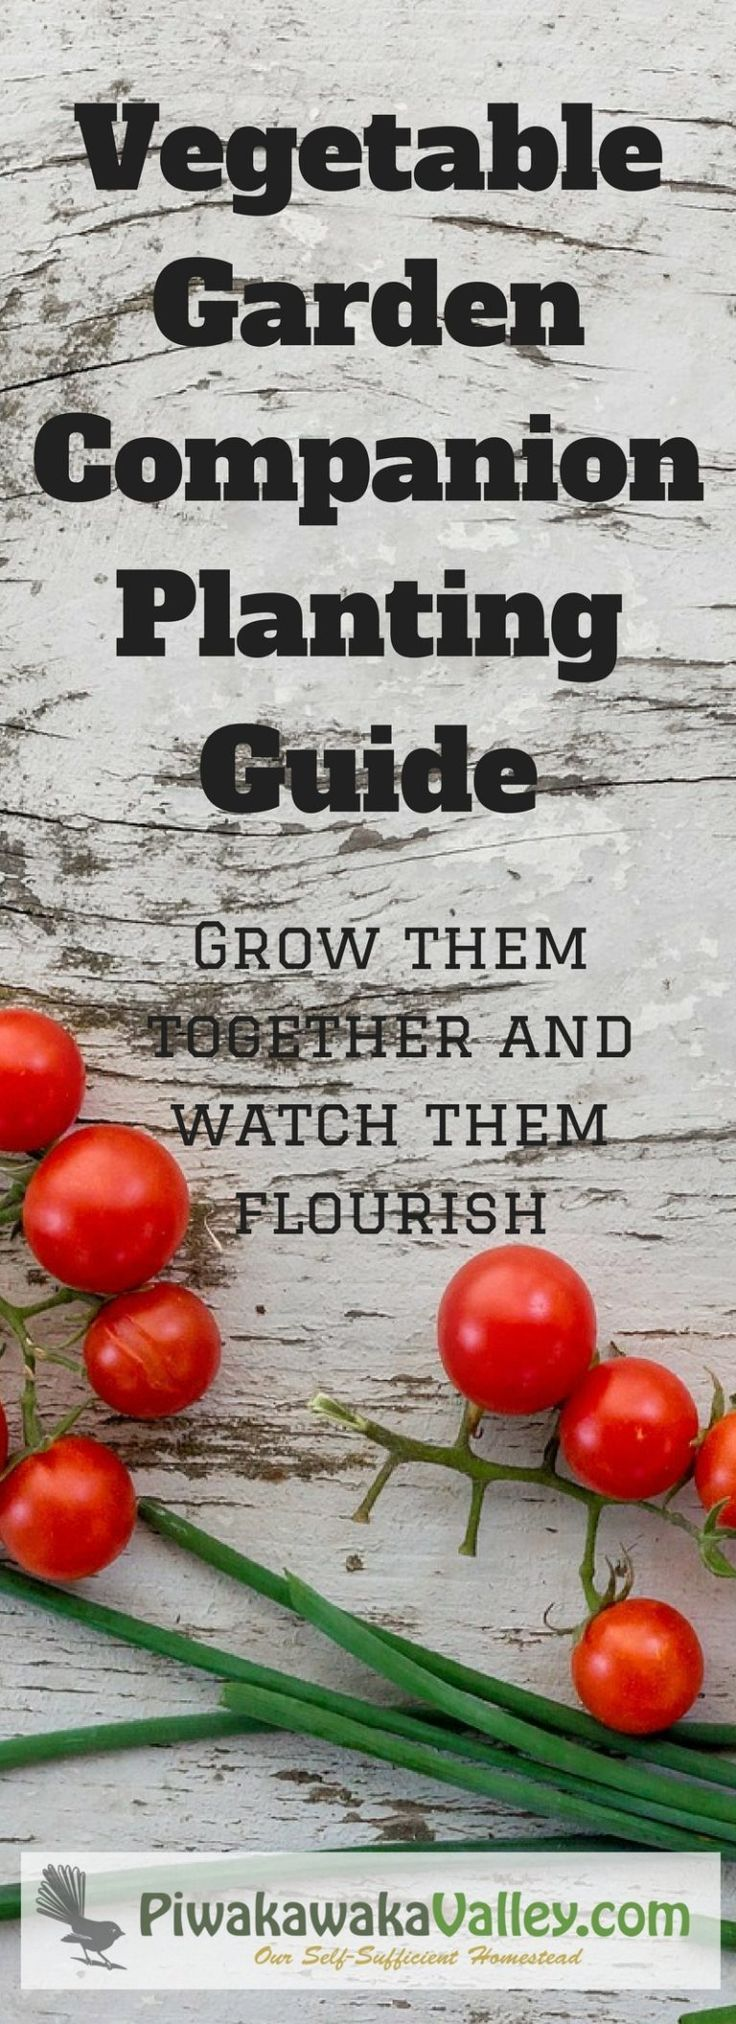 Companion Planting can be a confusing business. It takes a while to get your head around companion plant combinations that work and don't work together. Some plants work better with others and some are a terrible combination and they both struggle. Here a